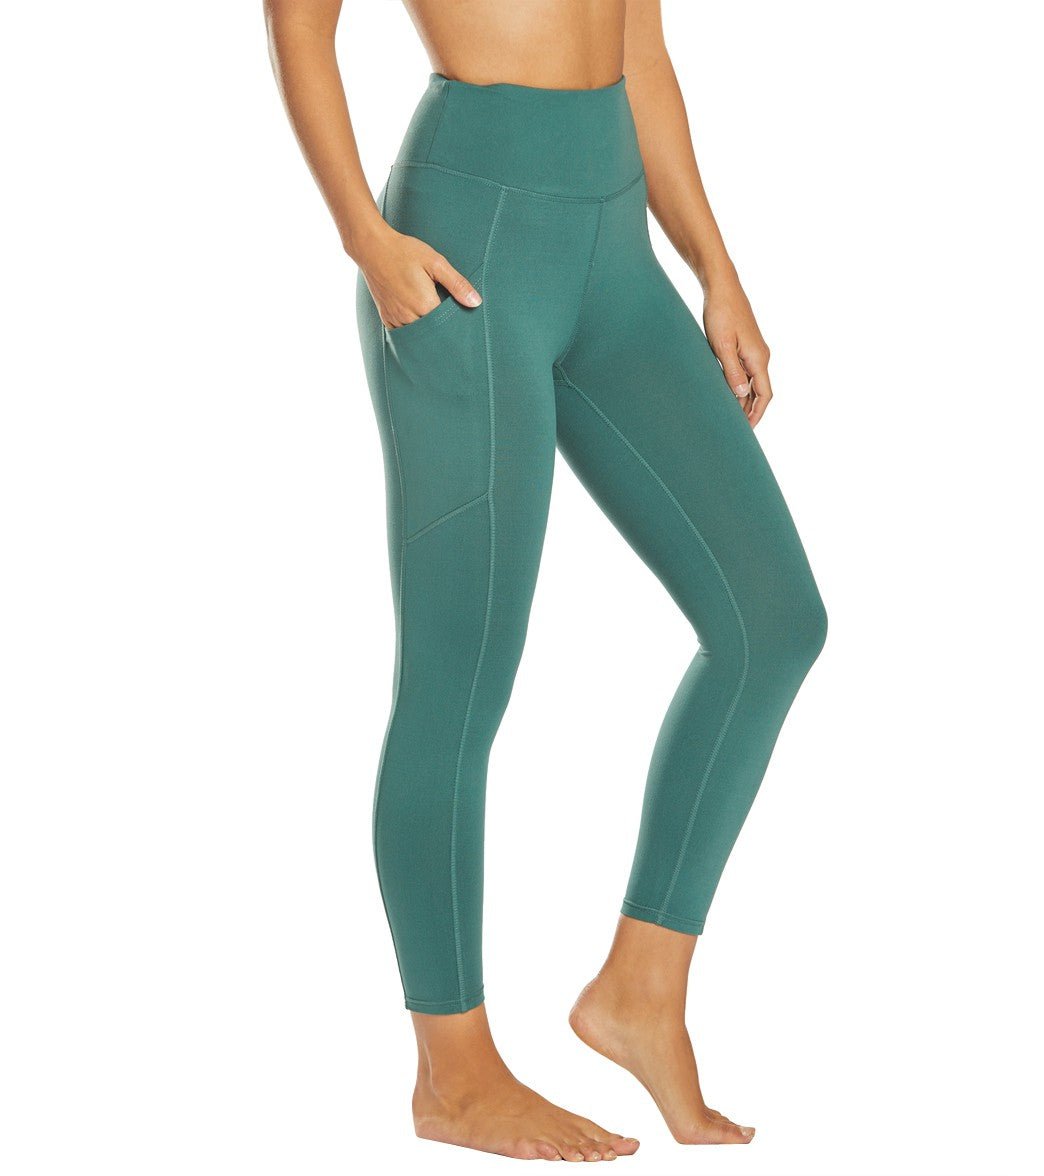 Balance Collection Eclipse Contender Yoga Capri Pants - Mallard Green Cotton